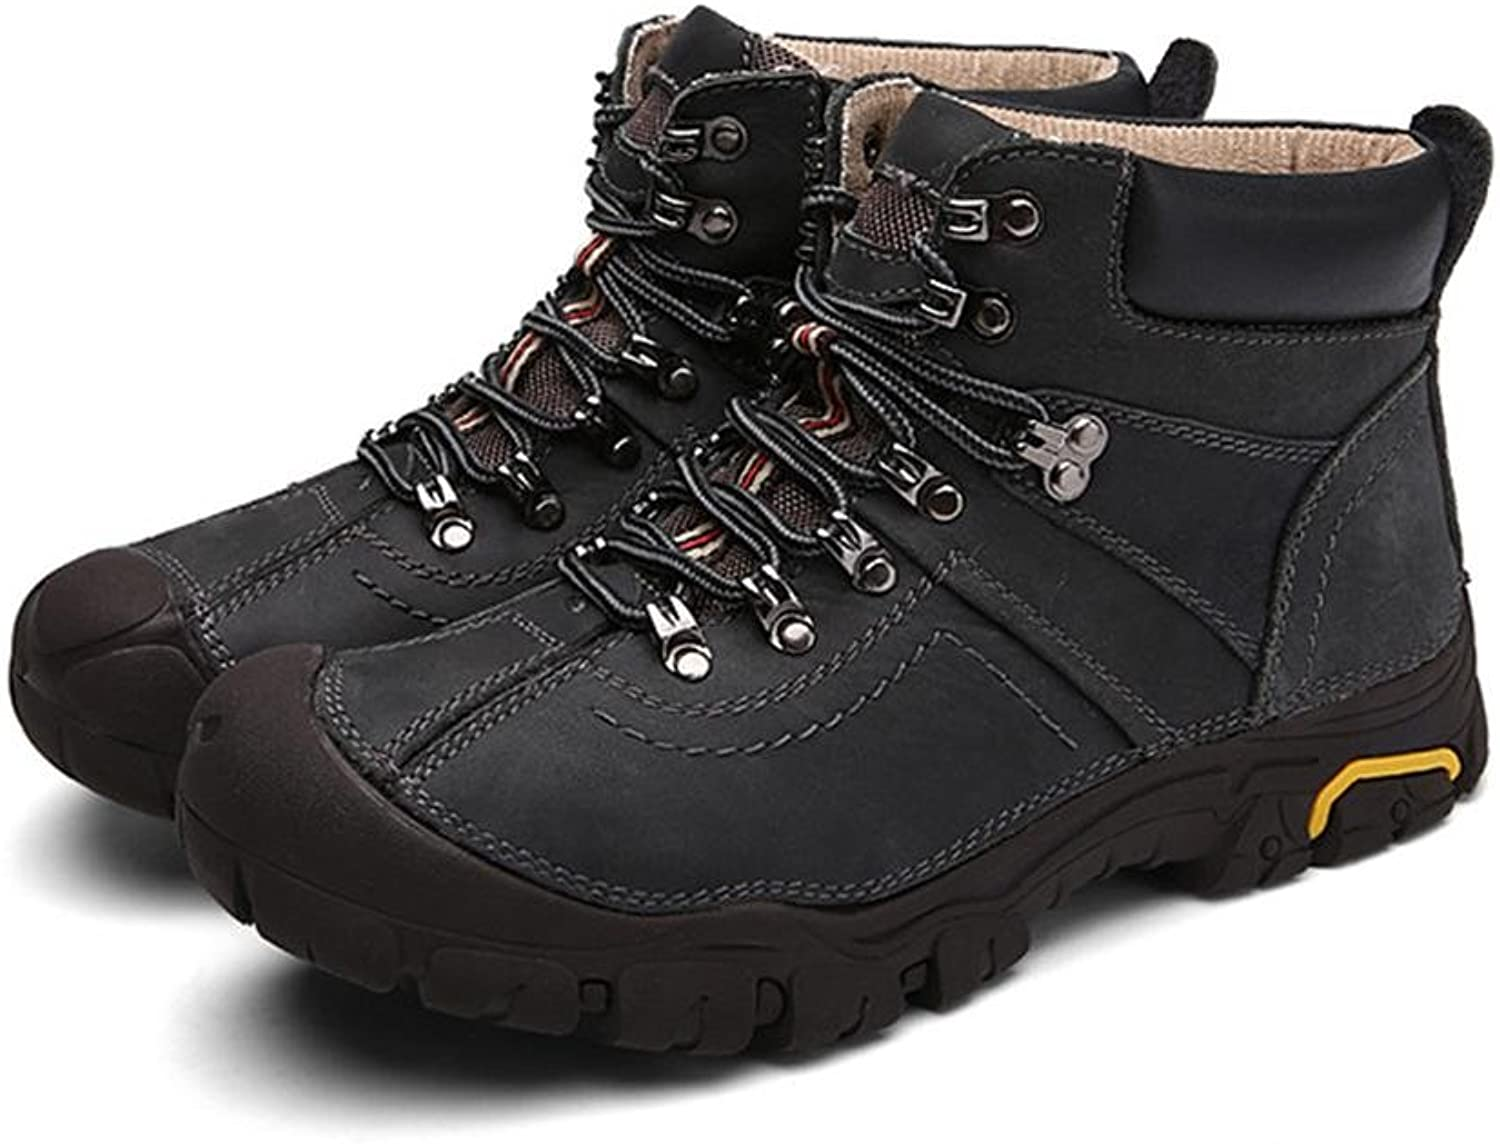 Z&HX Men's Trekking and Hiking shoes